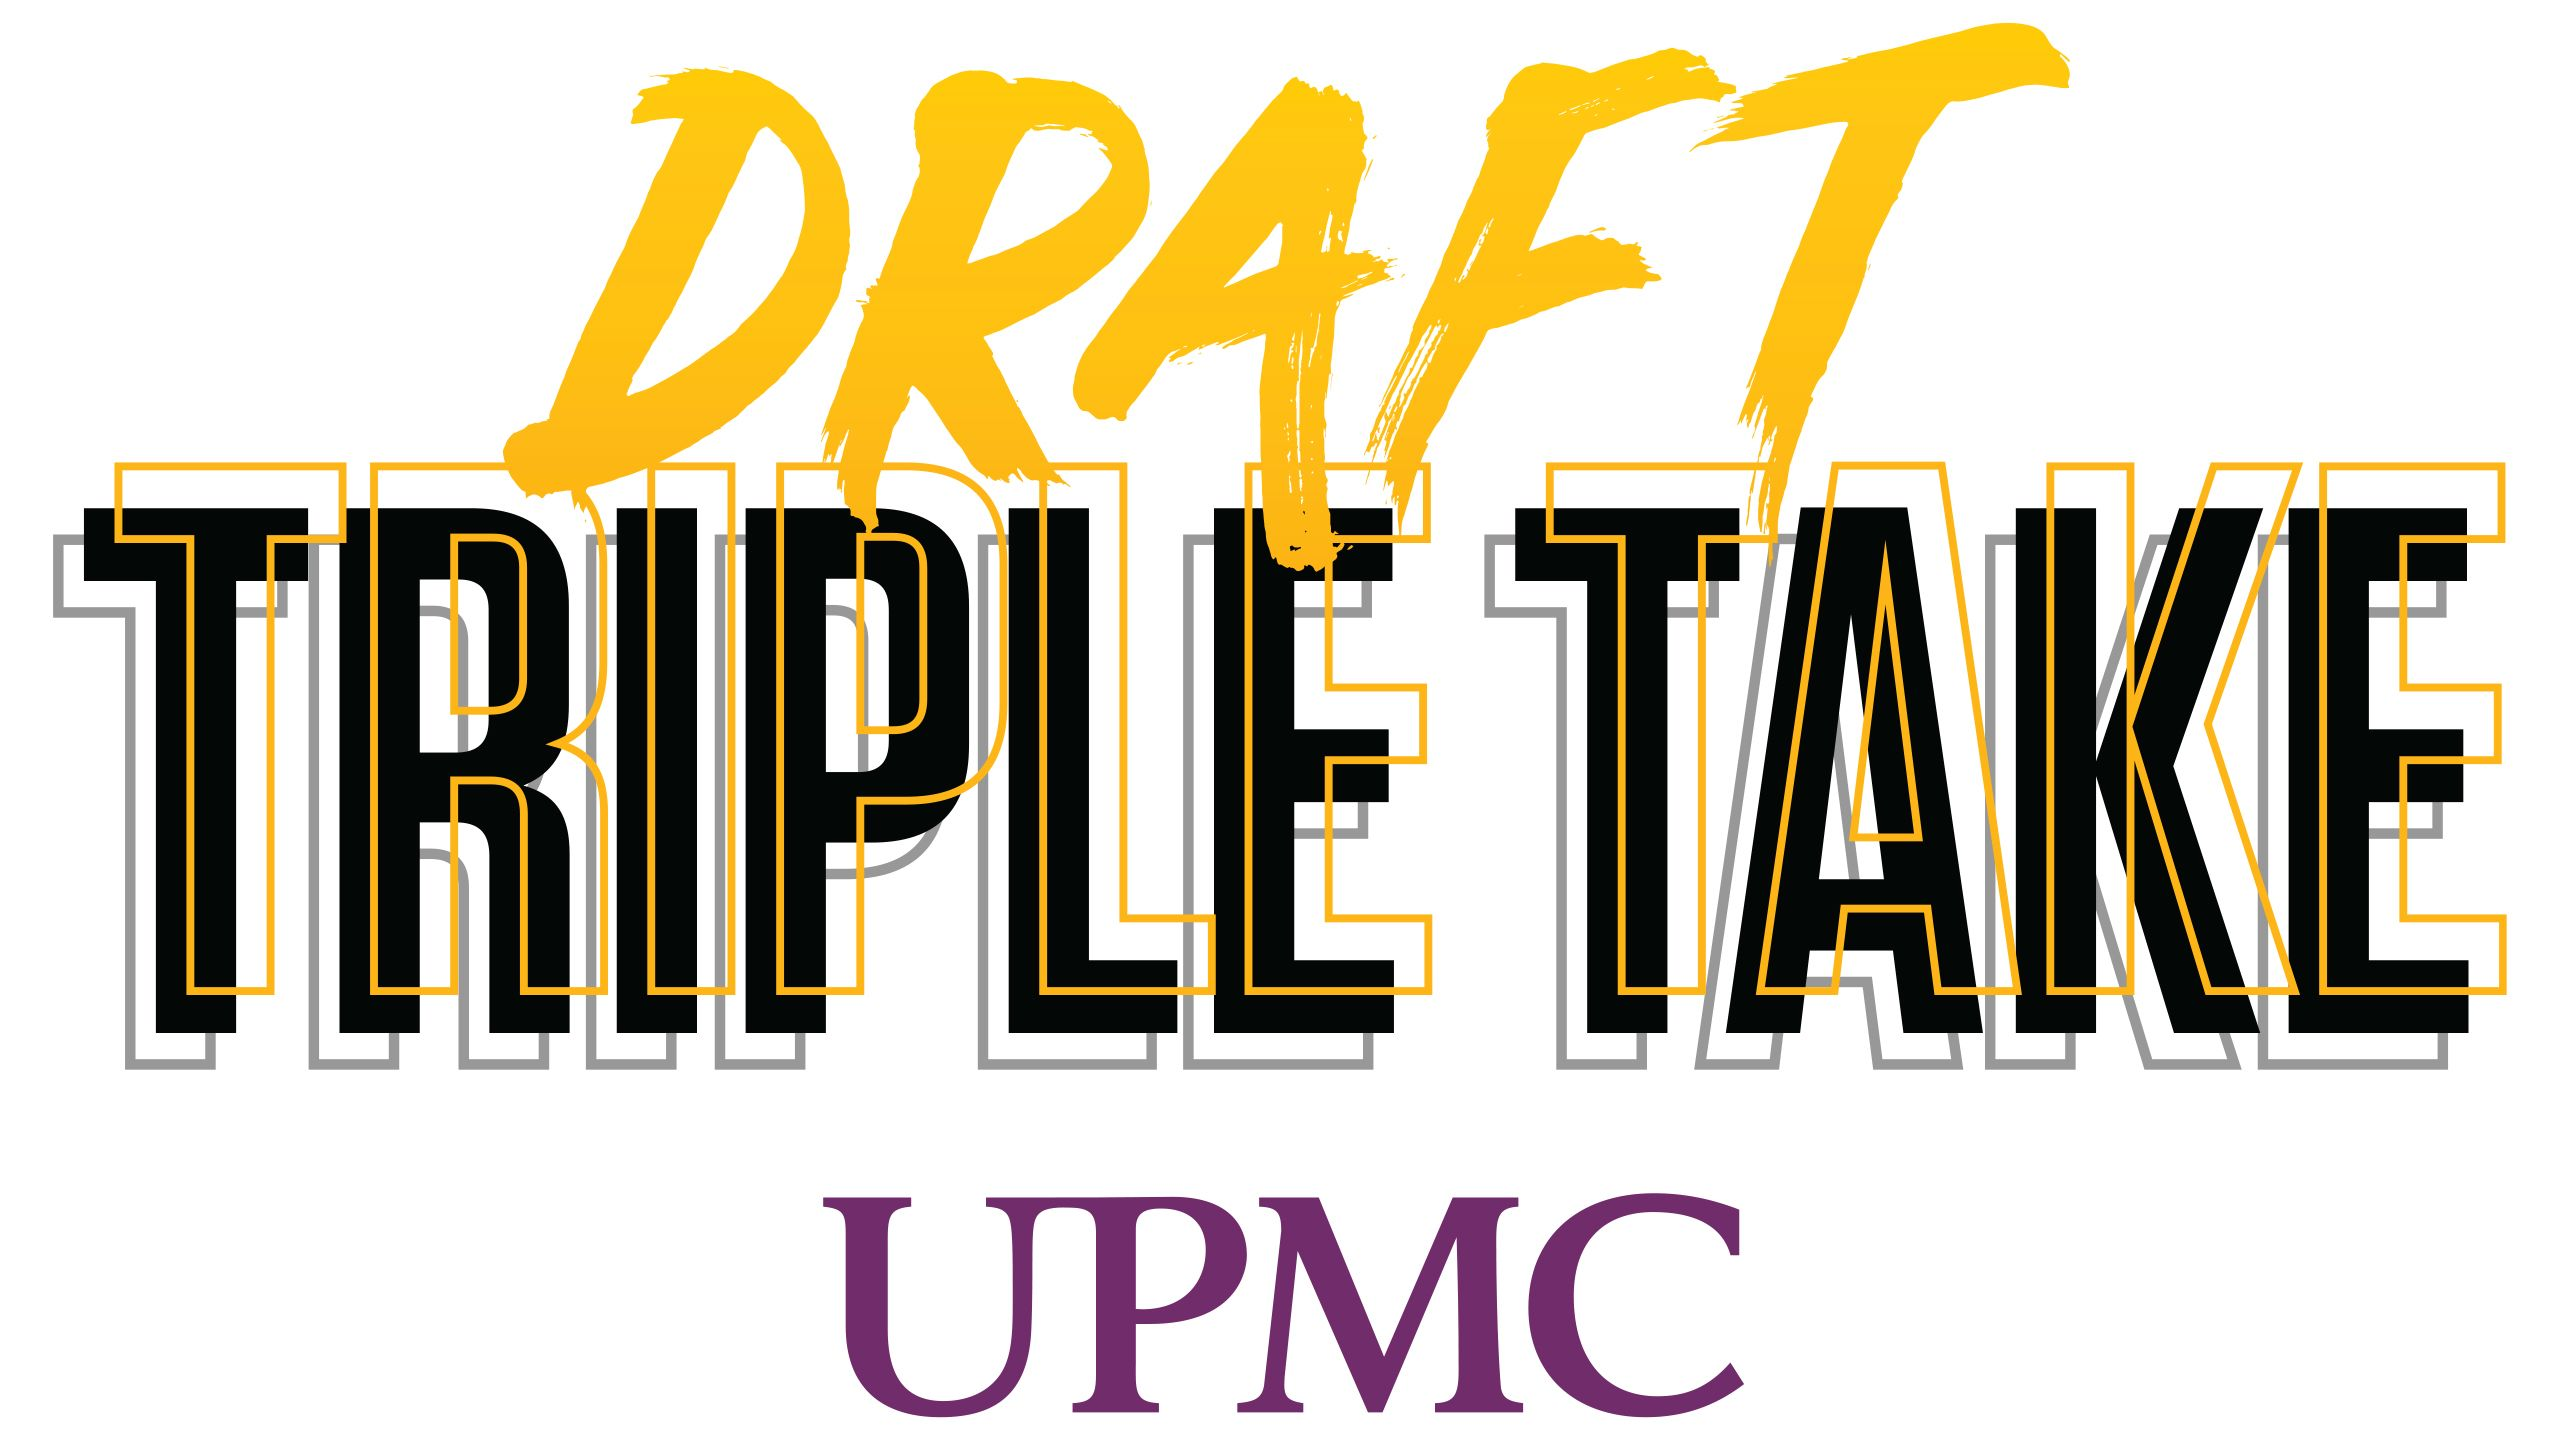 NFL Draft Triple Take